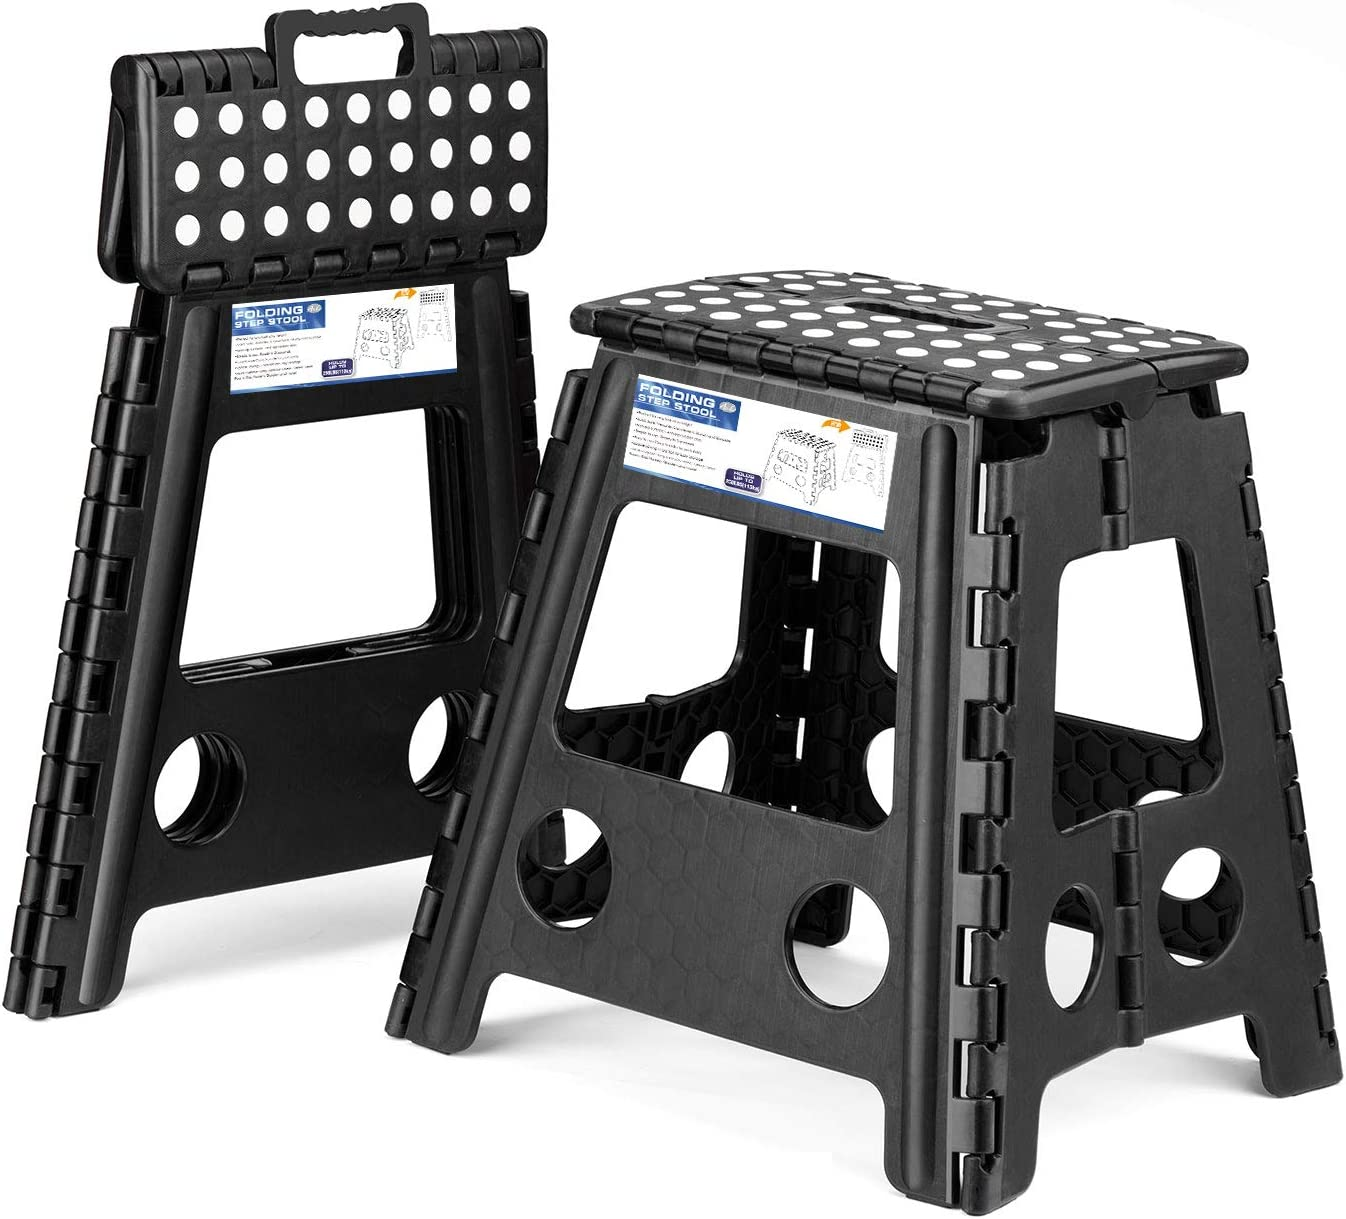 Acko 2 Pack 16 Inches Super Strong Folding Step Stool for Adults, Kitchen Stepping Stools, Garden Step Stool Black